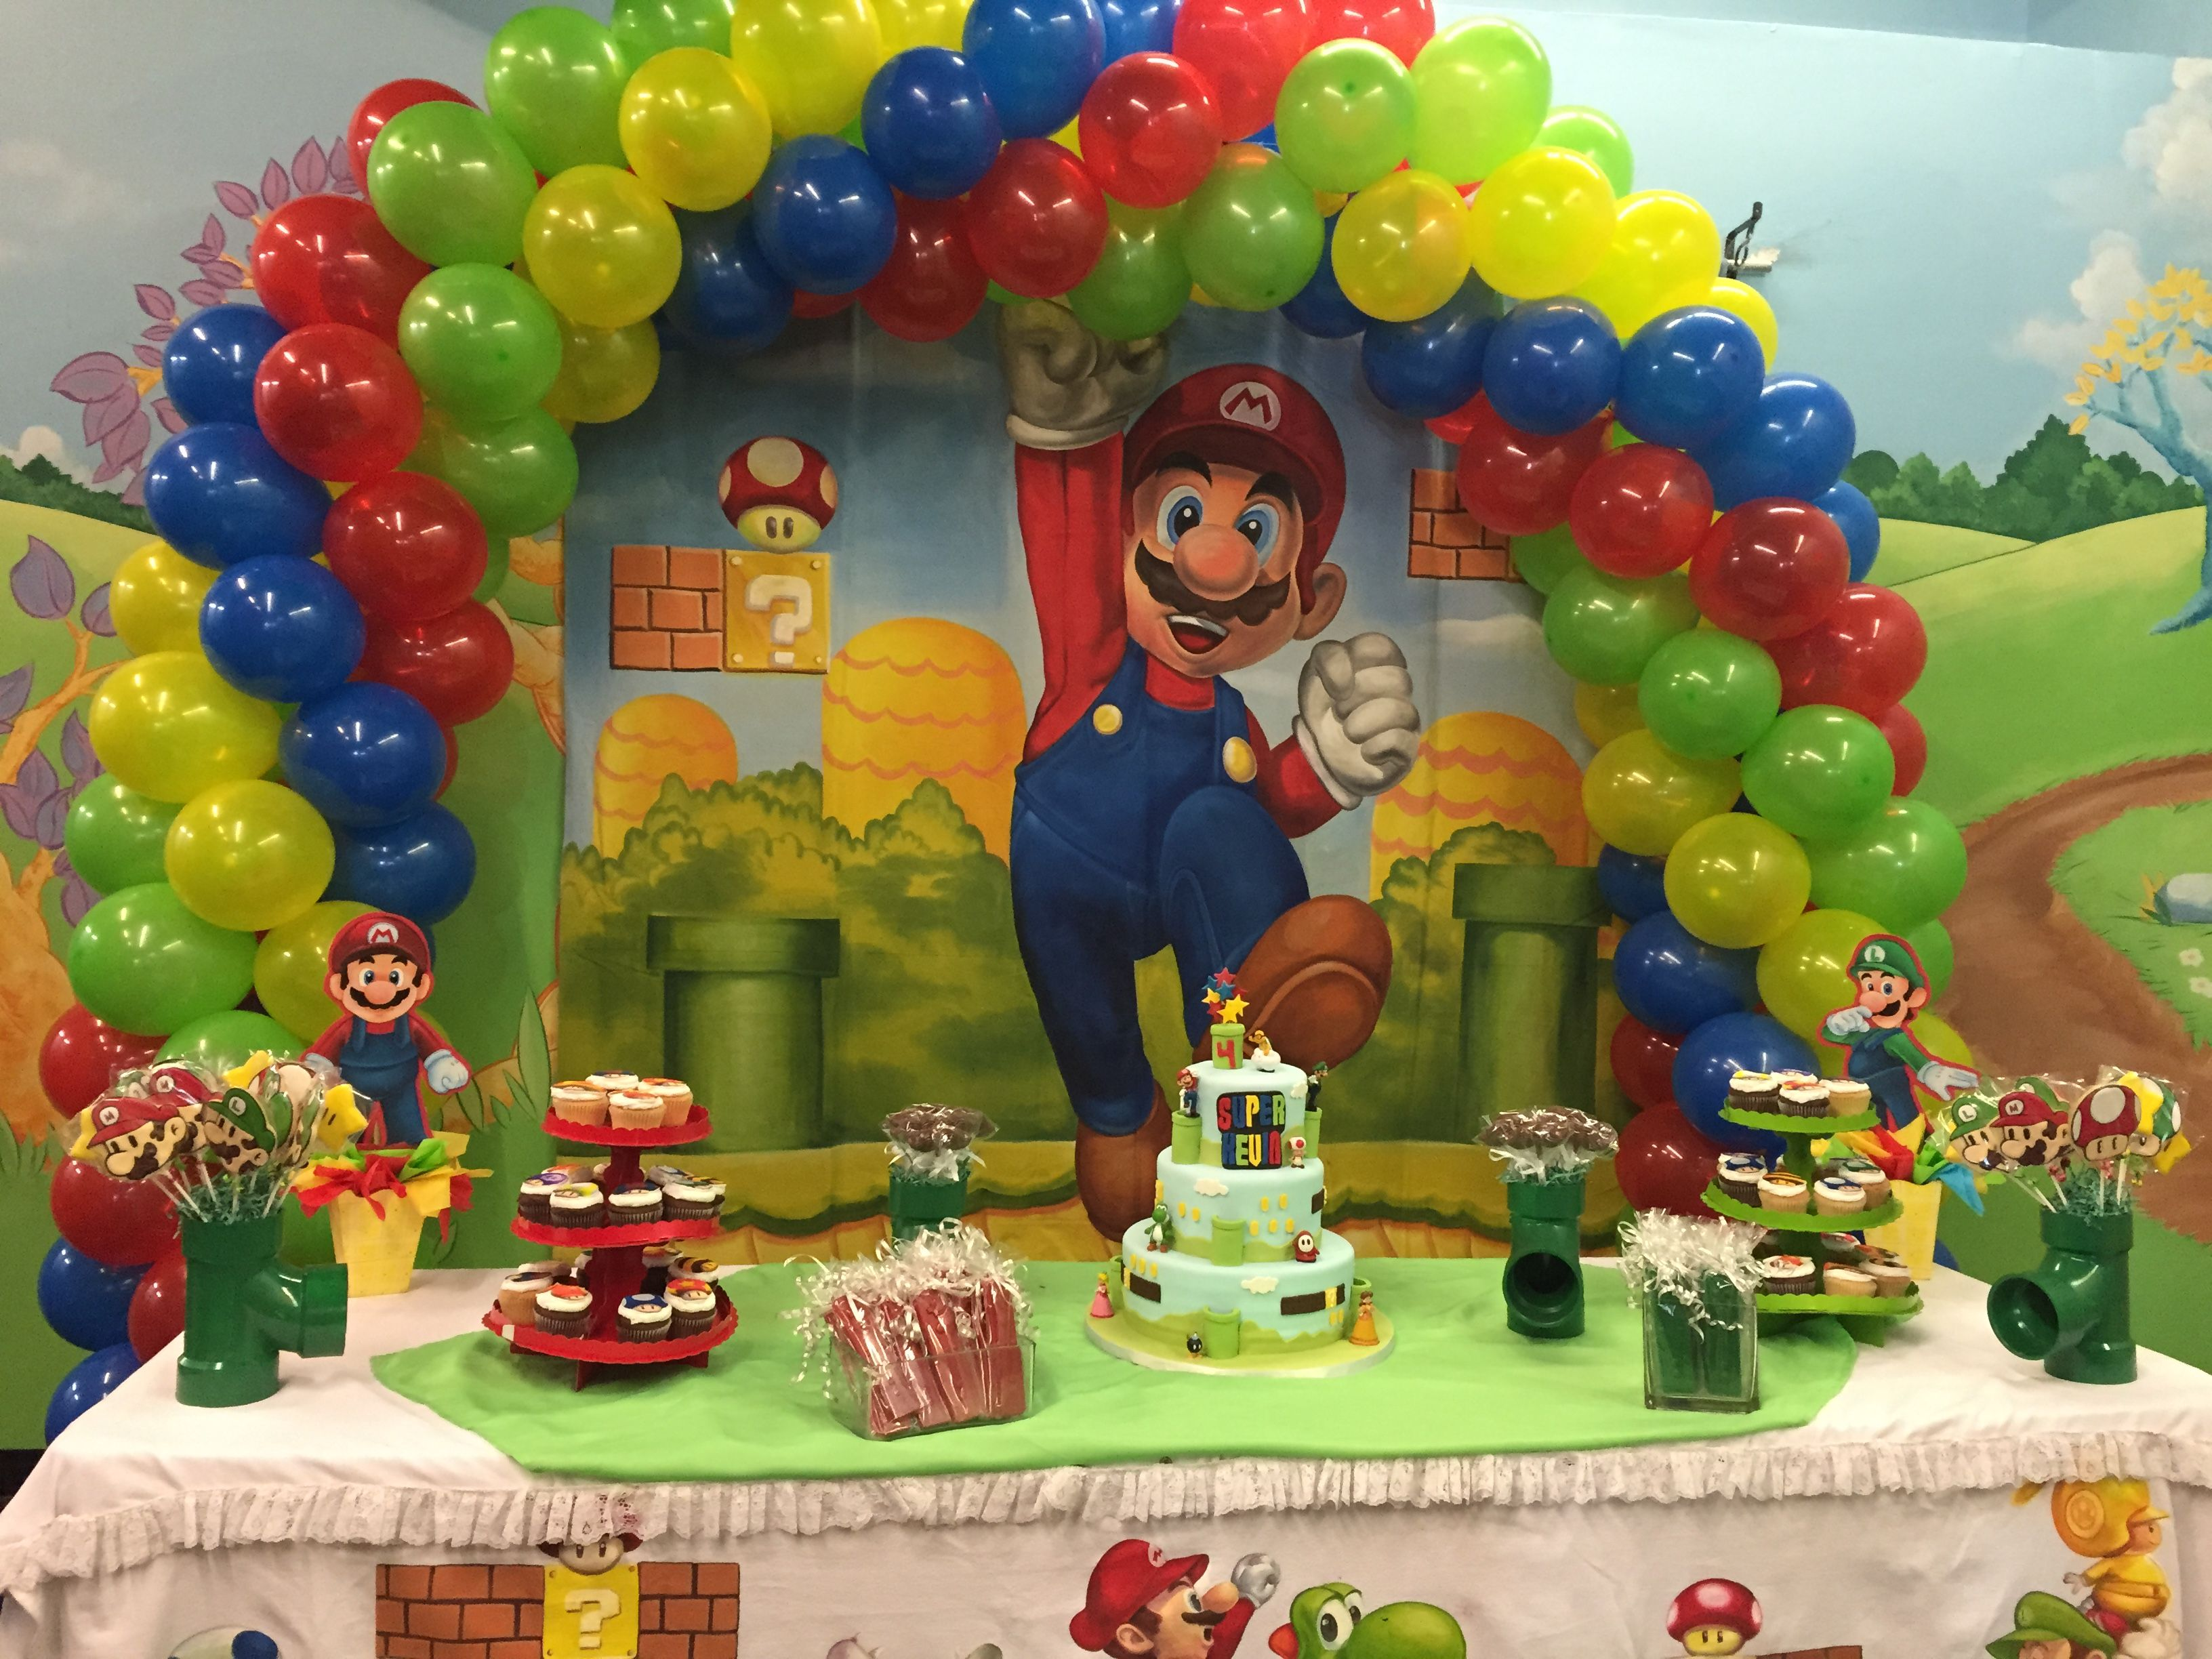 Cumpleaños De Mario Bross Super Mario Bros Birthday Party Mario Birthday Party Mario Bros Birthday Party Ideas